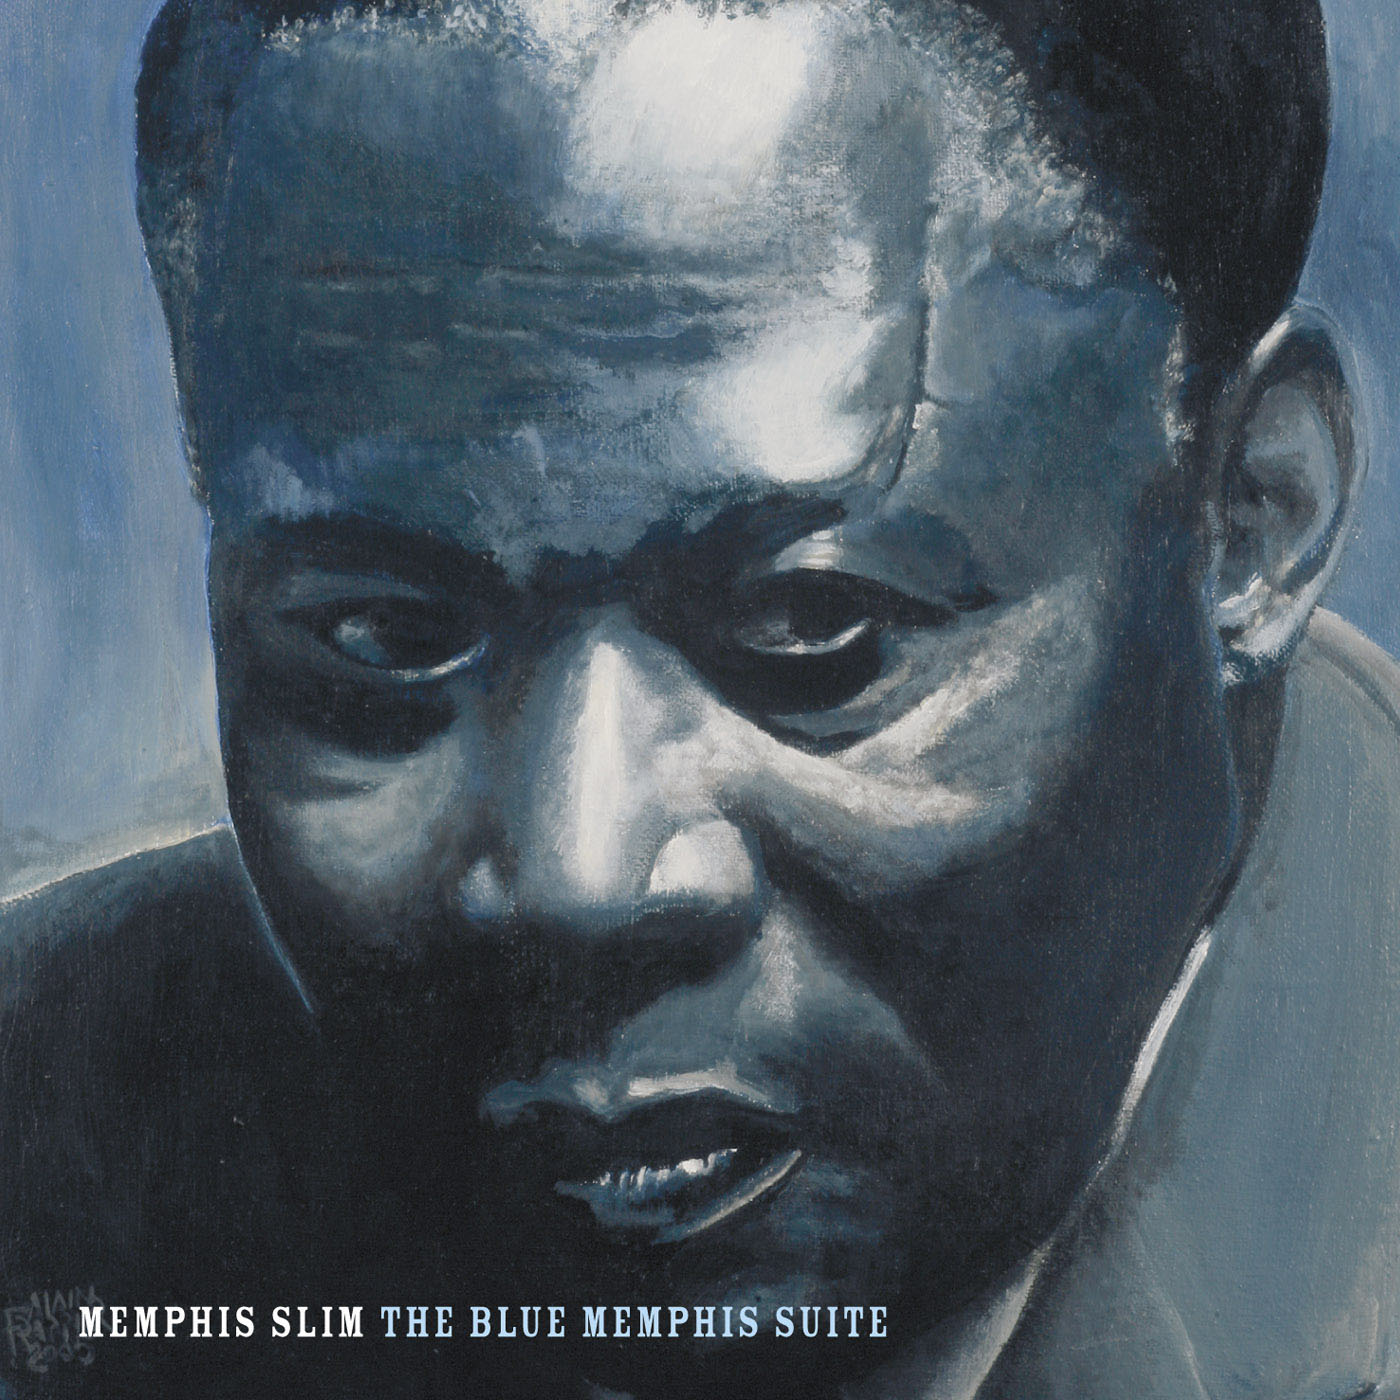 The Blue Memphis Suite by Memphis Slim